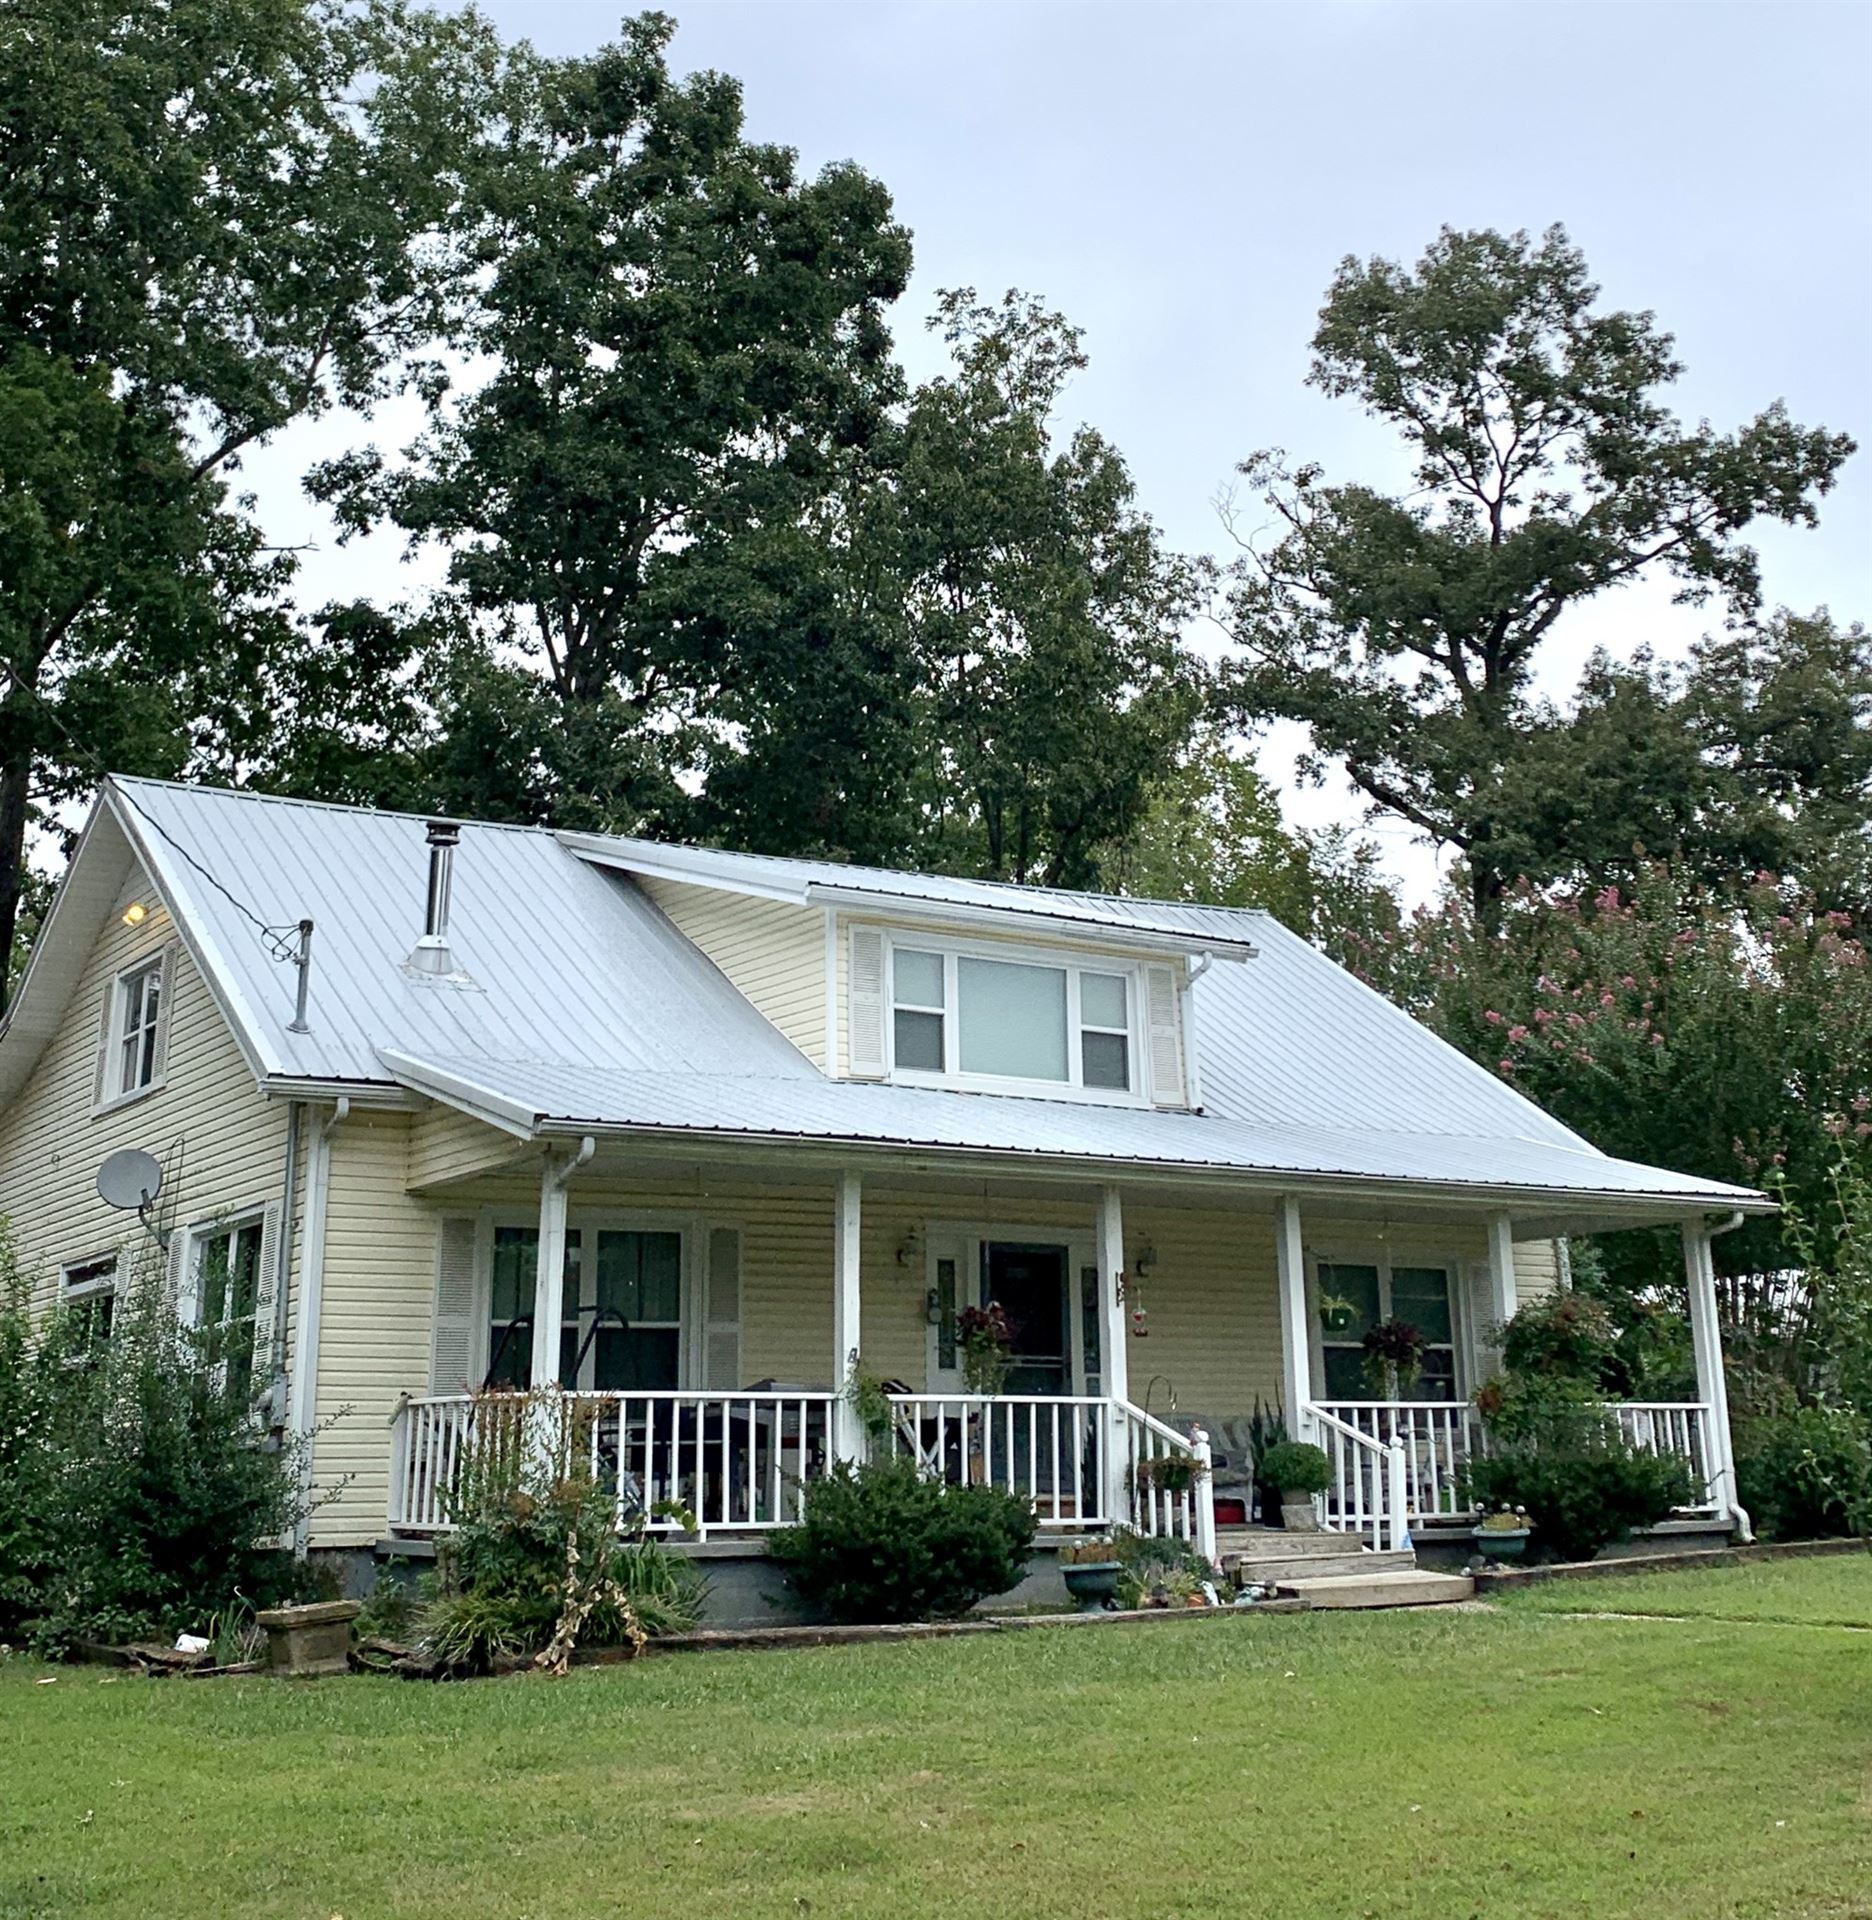 810 Old Mansford Rd, Winchester, TN 37398 - MLS#: 2192063